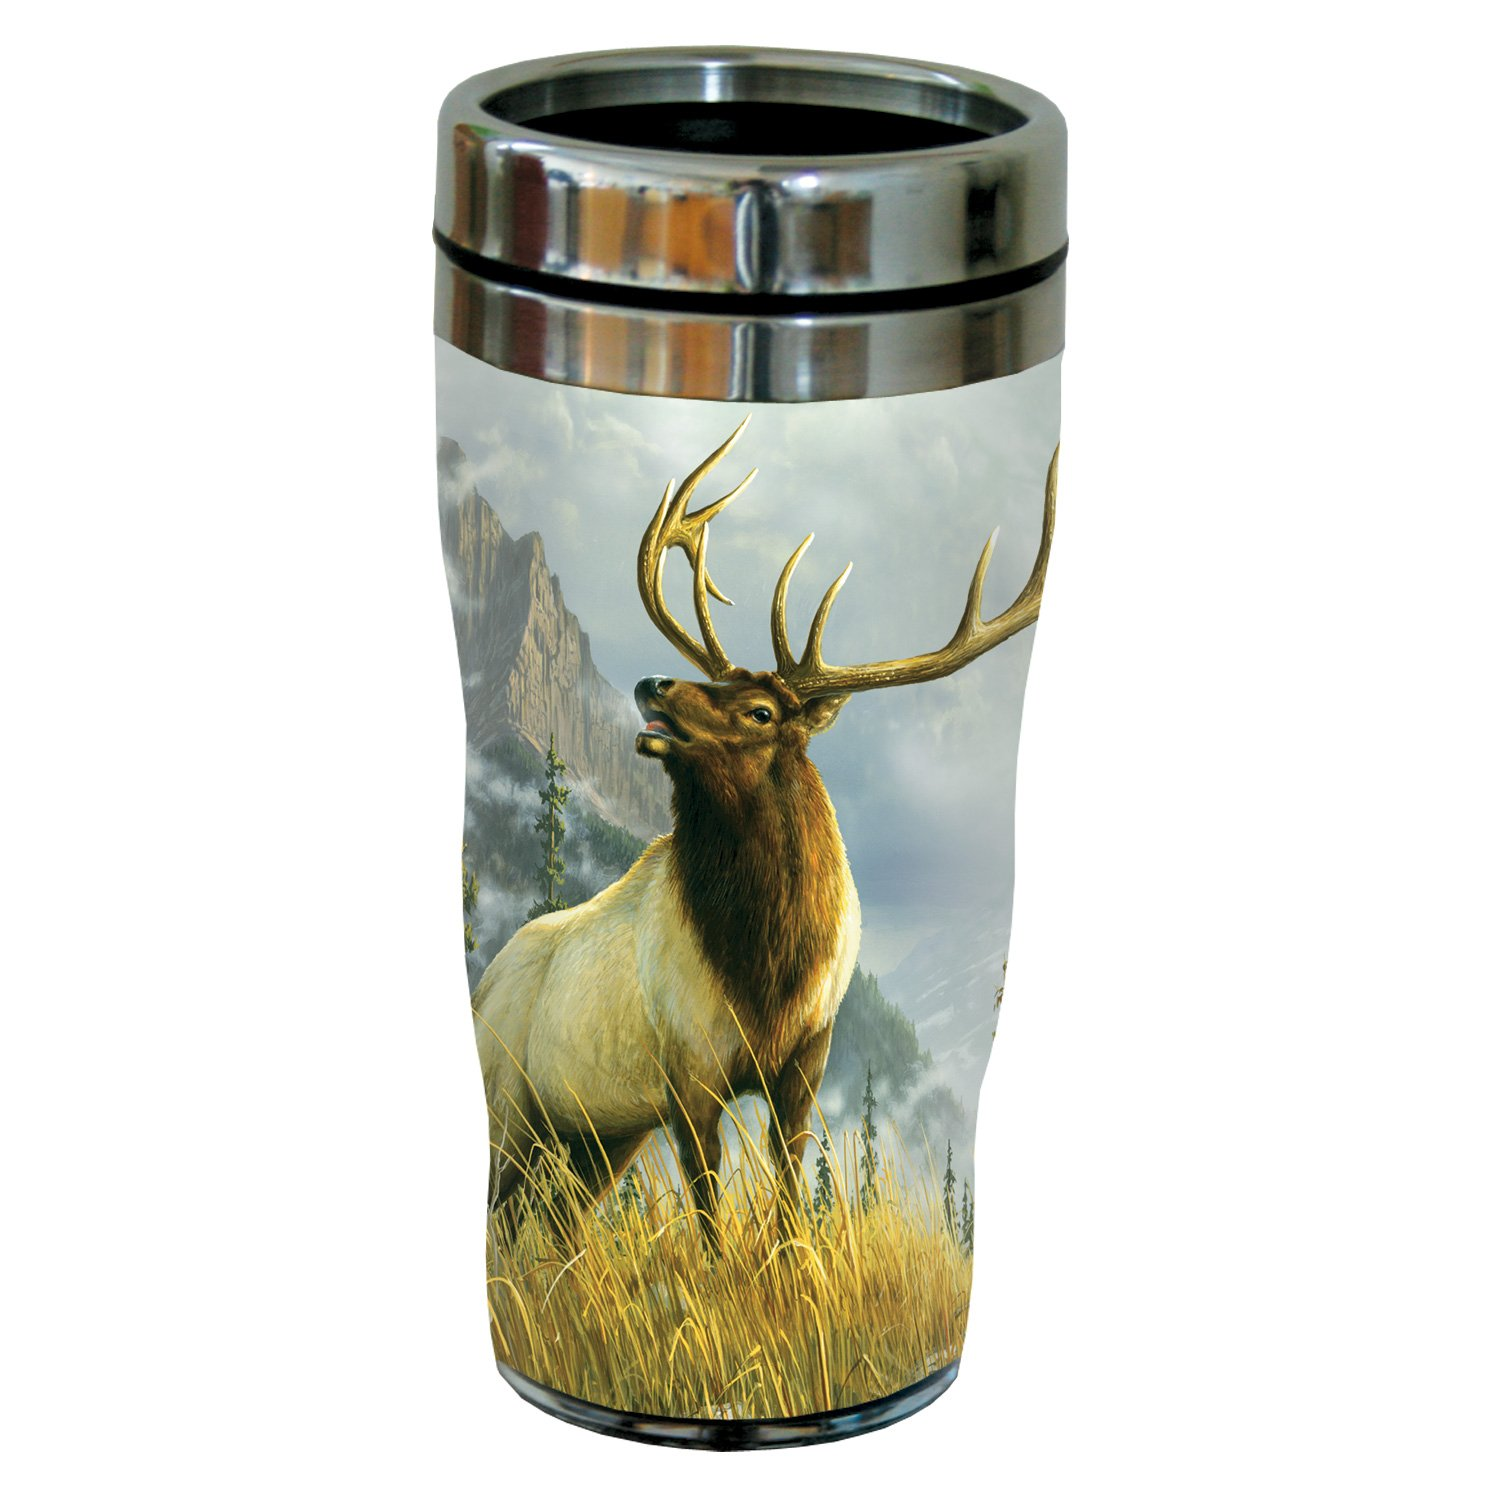 Tree-Free Greetings 77046 High Country Elk by James Hautman Vintage Art Sip 'N Go Travel tumbler, 16-Ounce, Stainless Steel, Multicolored